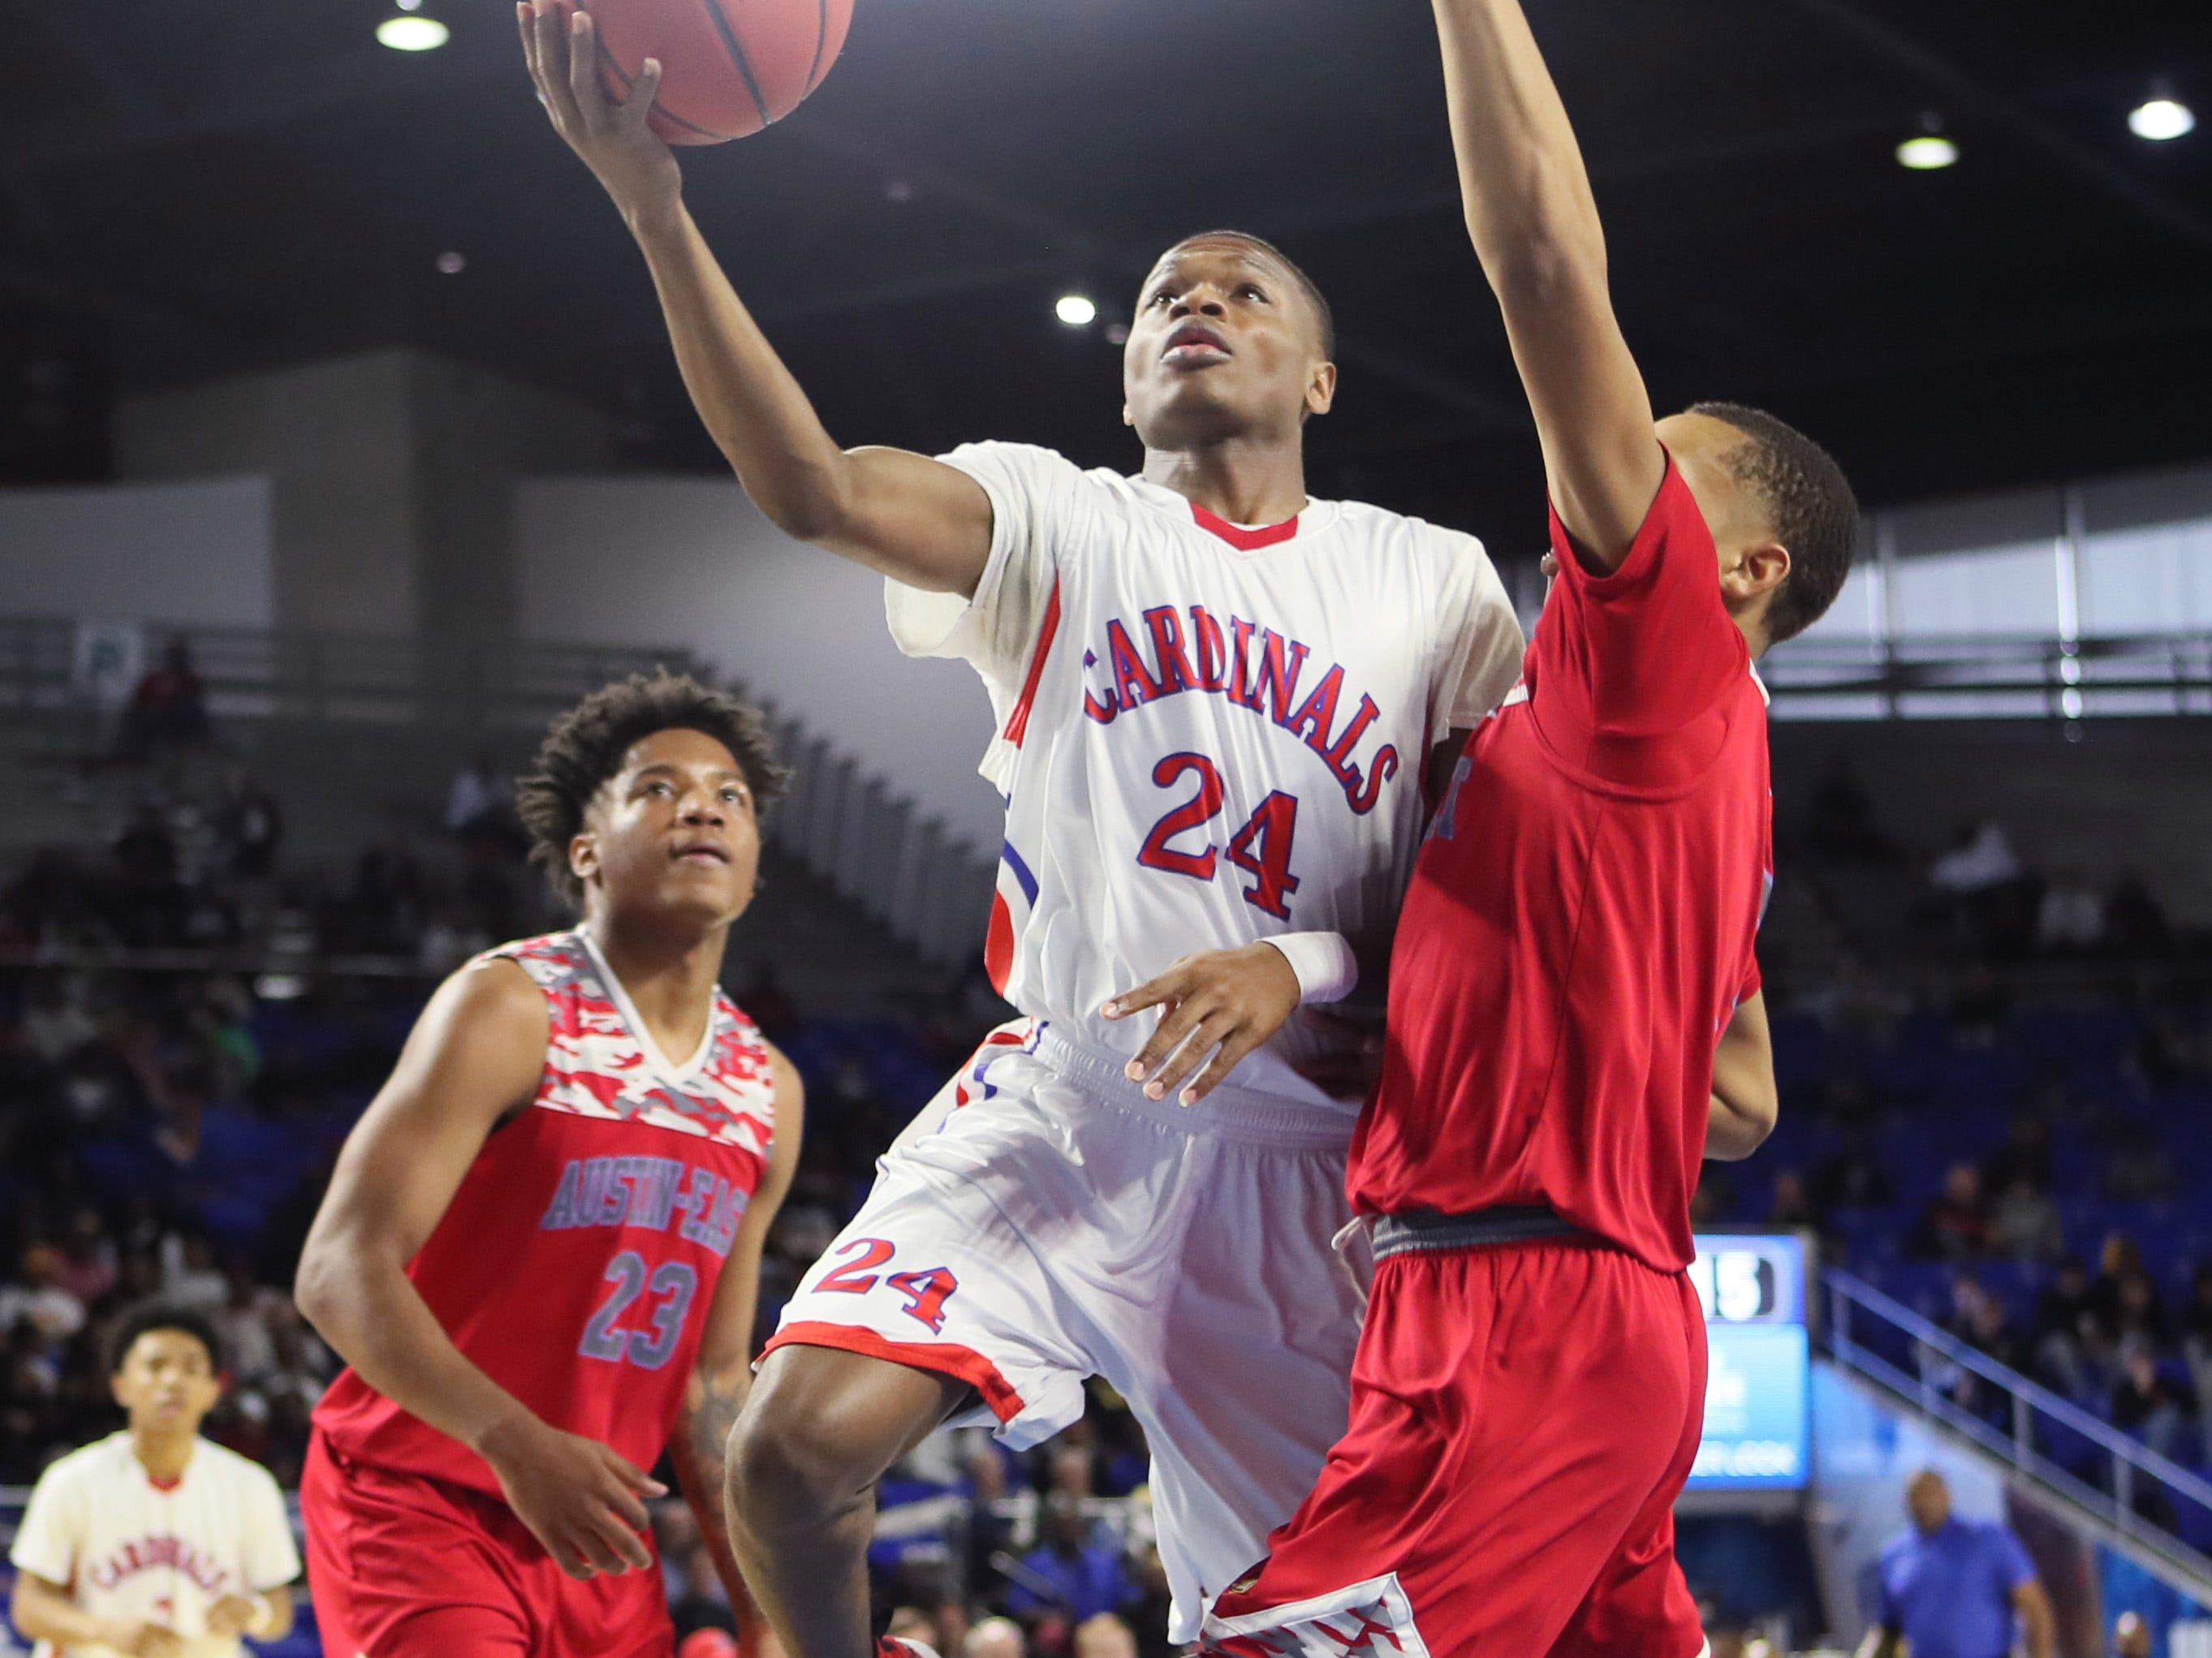 Wooddale's Tekevion Rounds tries to lay the ball up past Austin-East's Jaiohn Foster during the TSSAA Division I basketball state tournament in Murfreesboro on Wednesday, March 13, 2019.